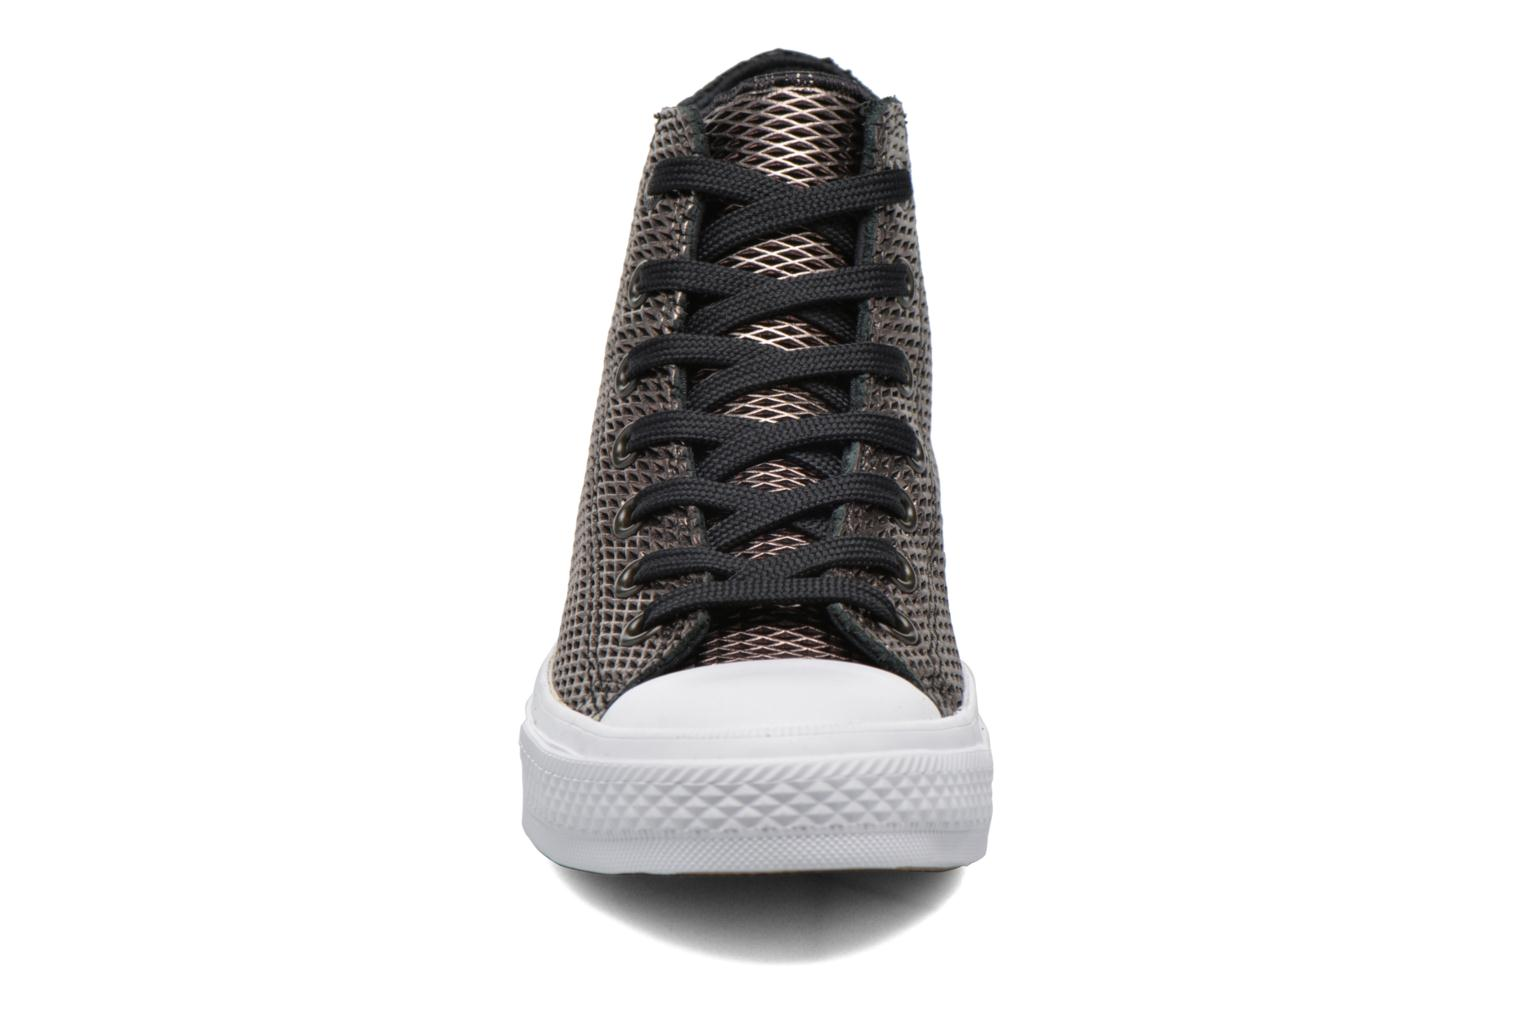 Converse Chuck Taylor All Star Ii Hi Perf Metallic Leather 1 Parere